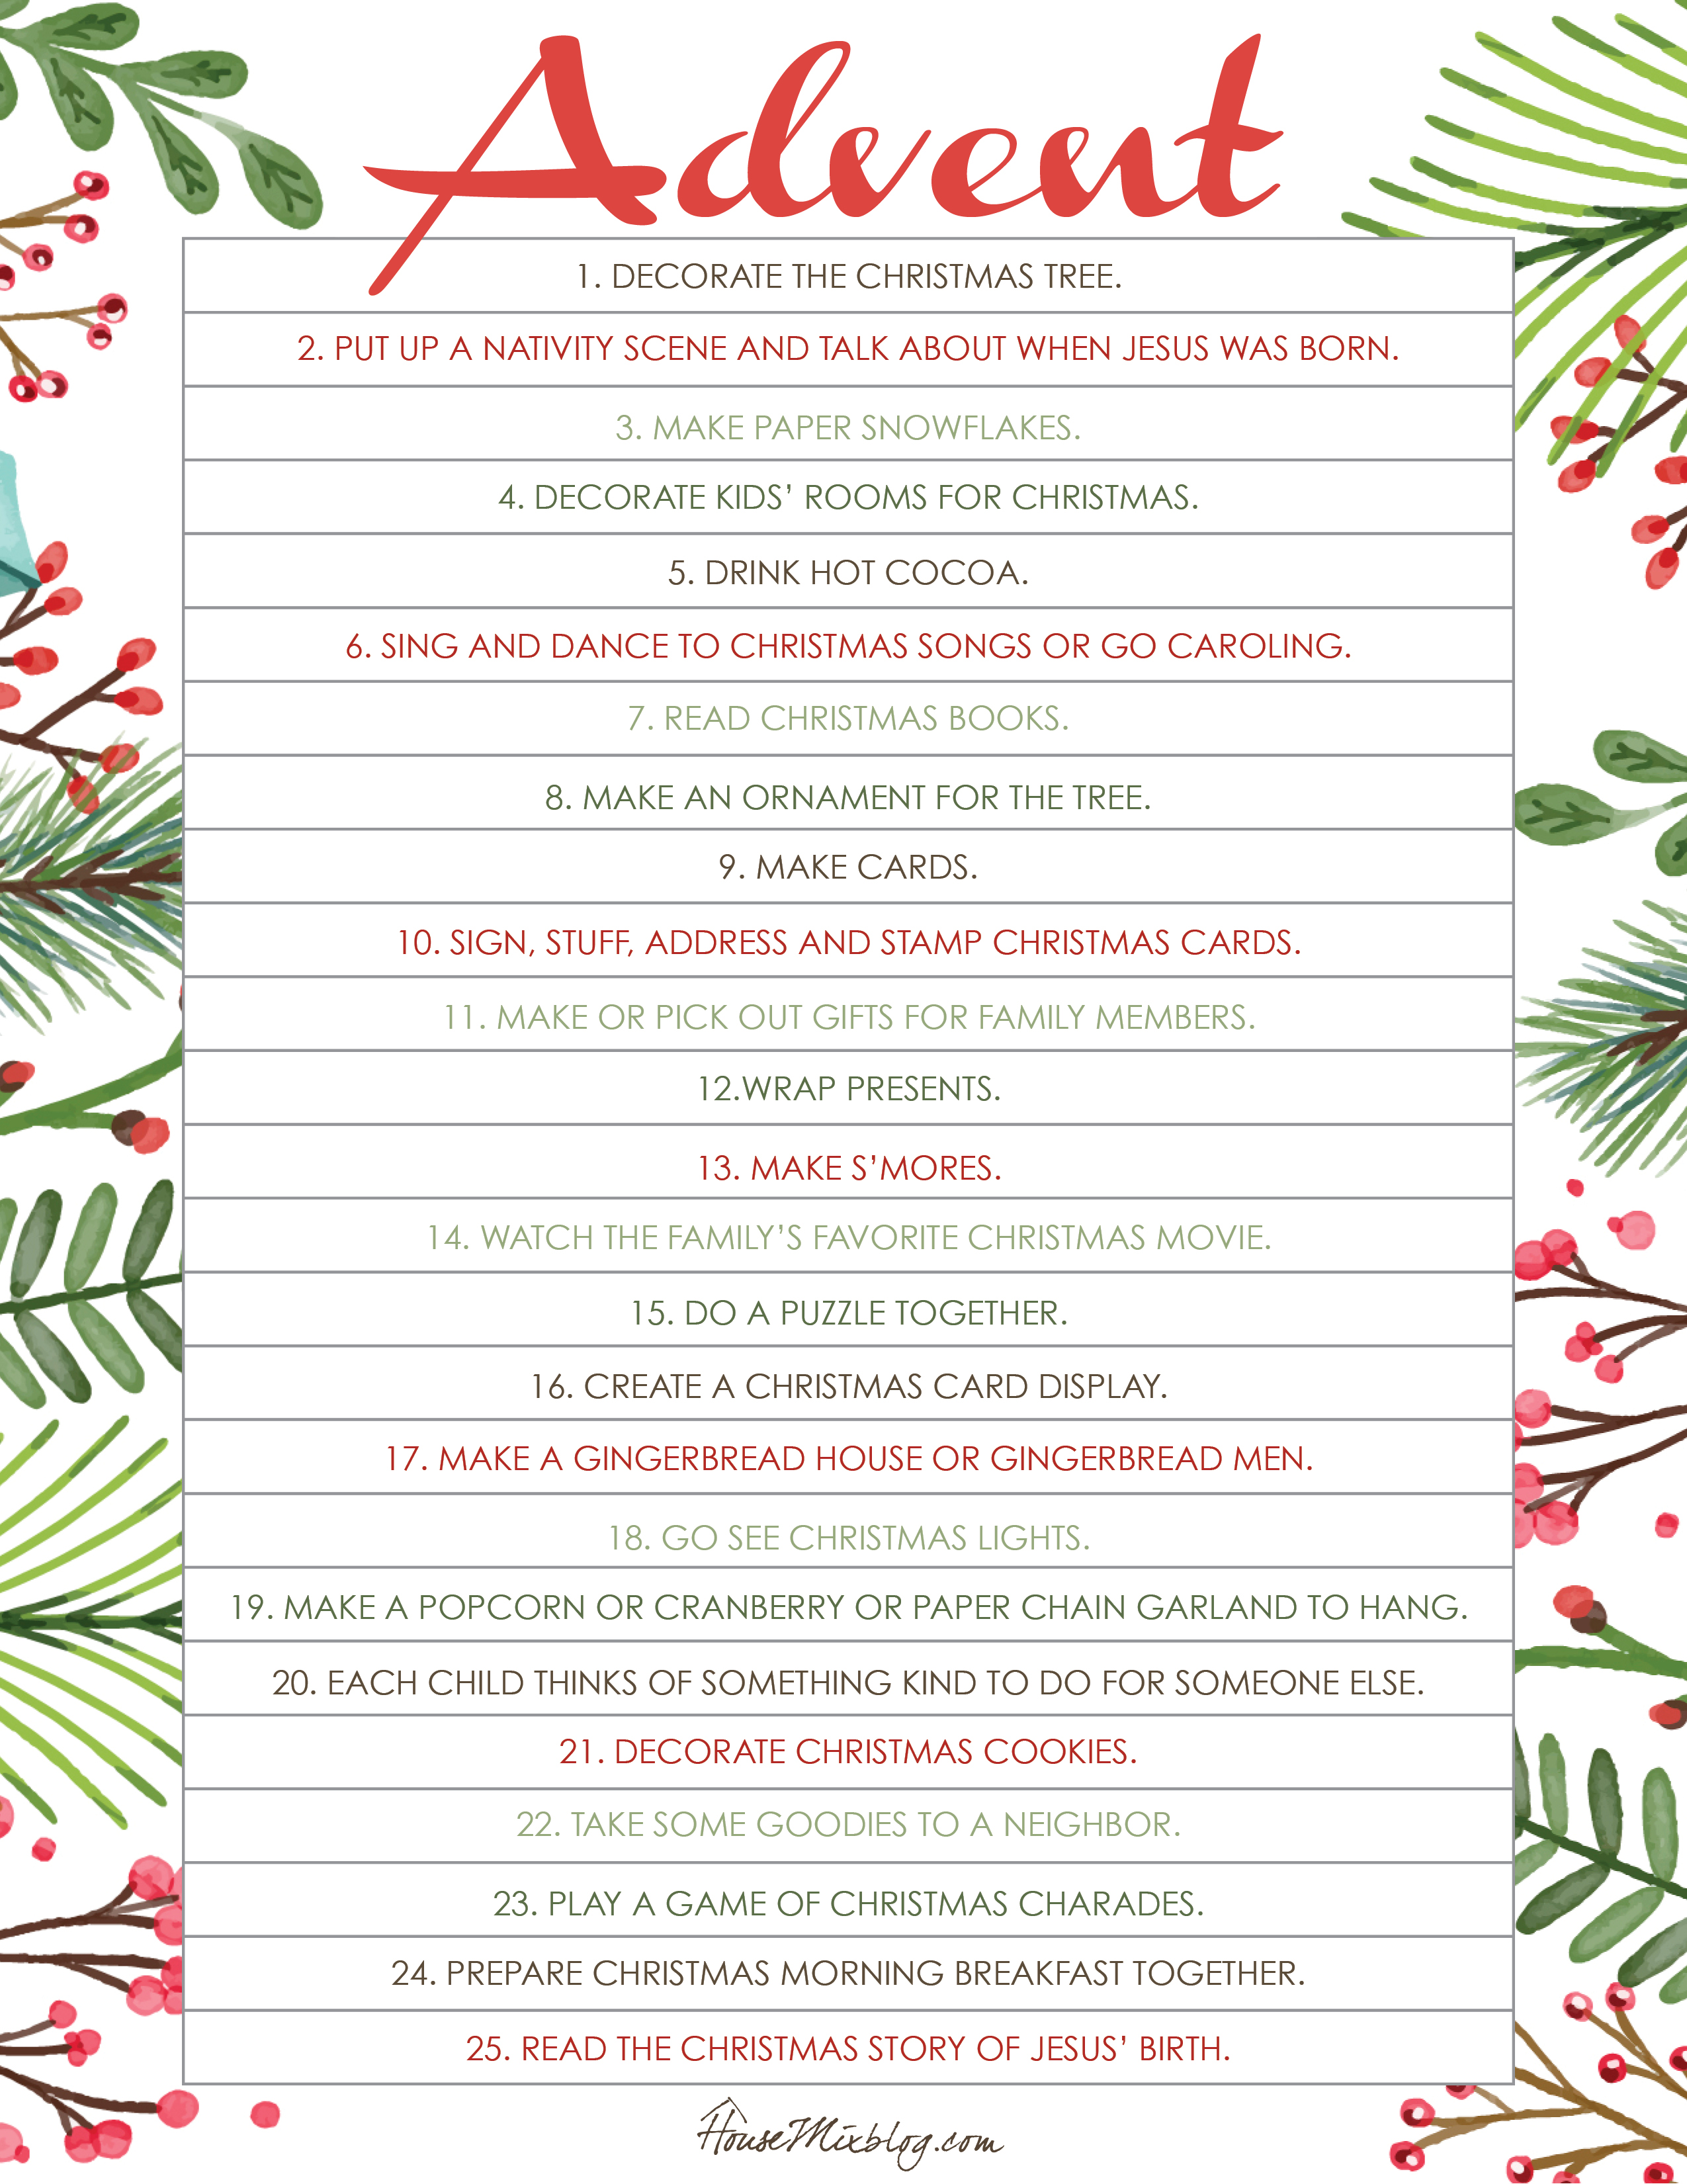 Printable Christmas activities for advent  House Mix